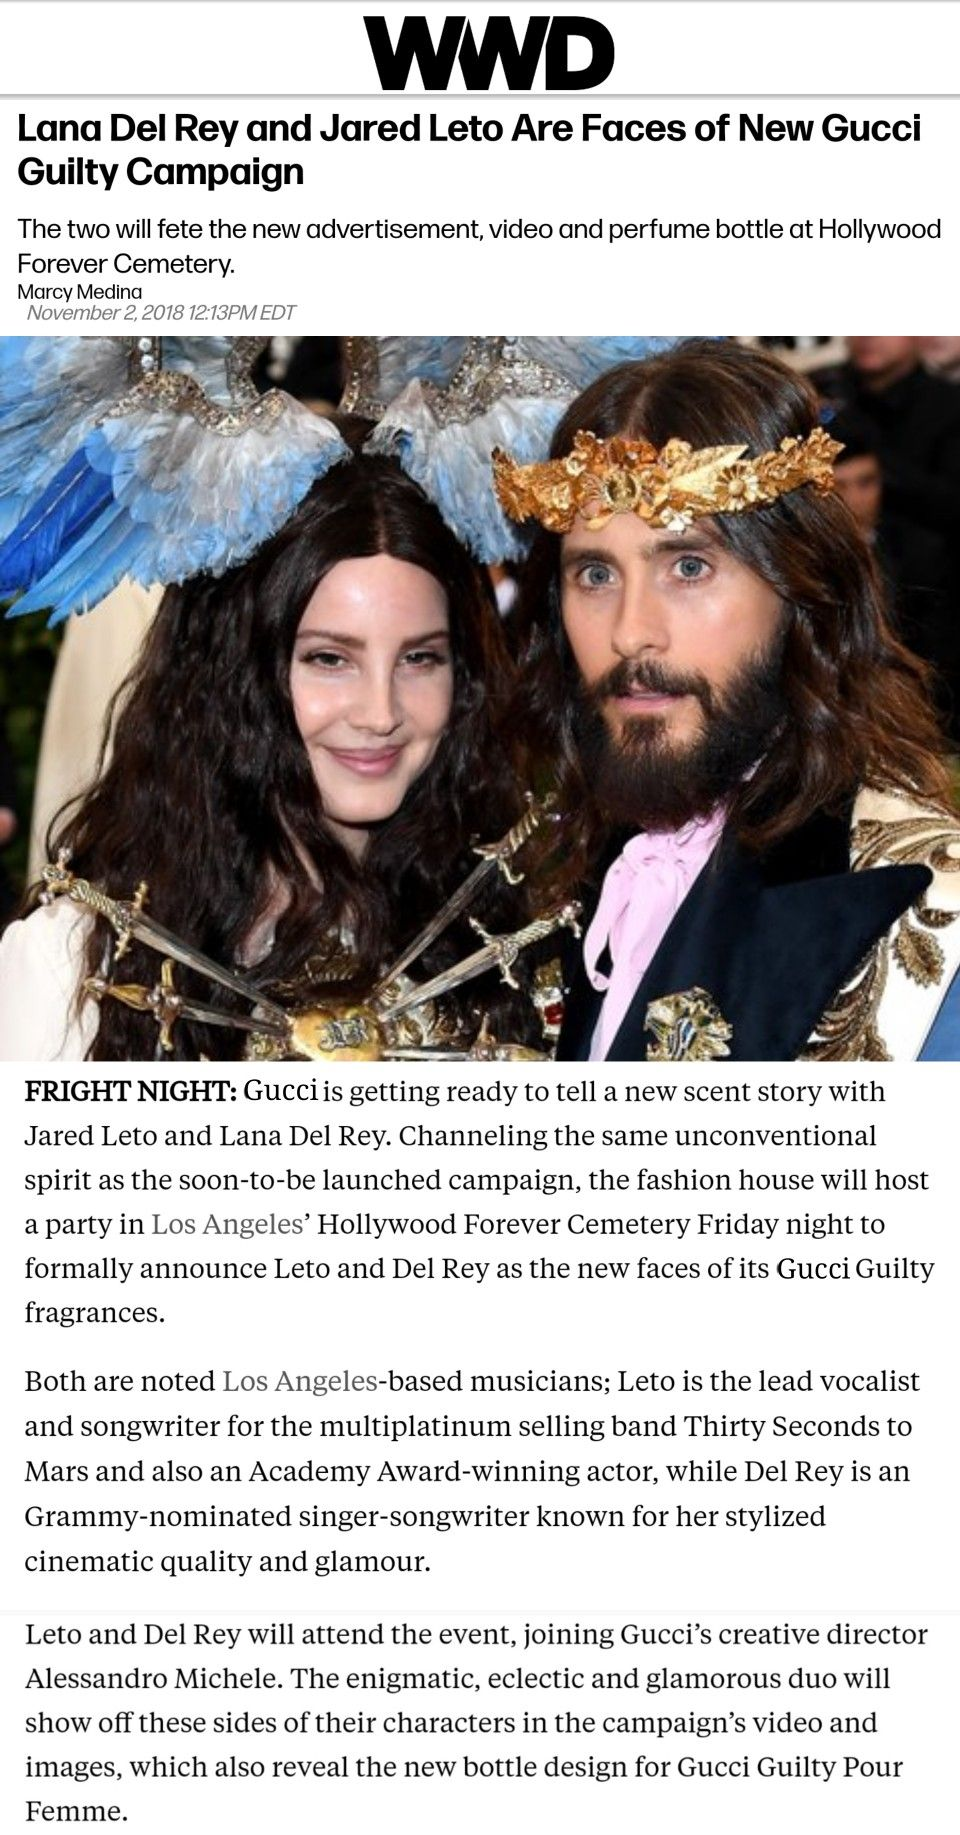 Lana Del Rey And Jared Leto Are The New Faces Of Gucci Guilty Fragrance Ldr News Lana Del Rey News Lana Del Rey Jared Leto